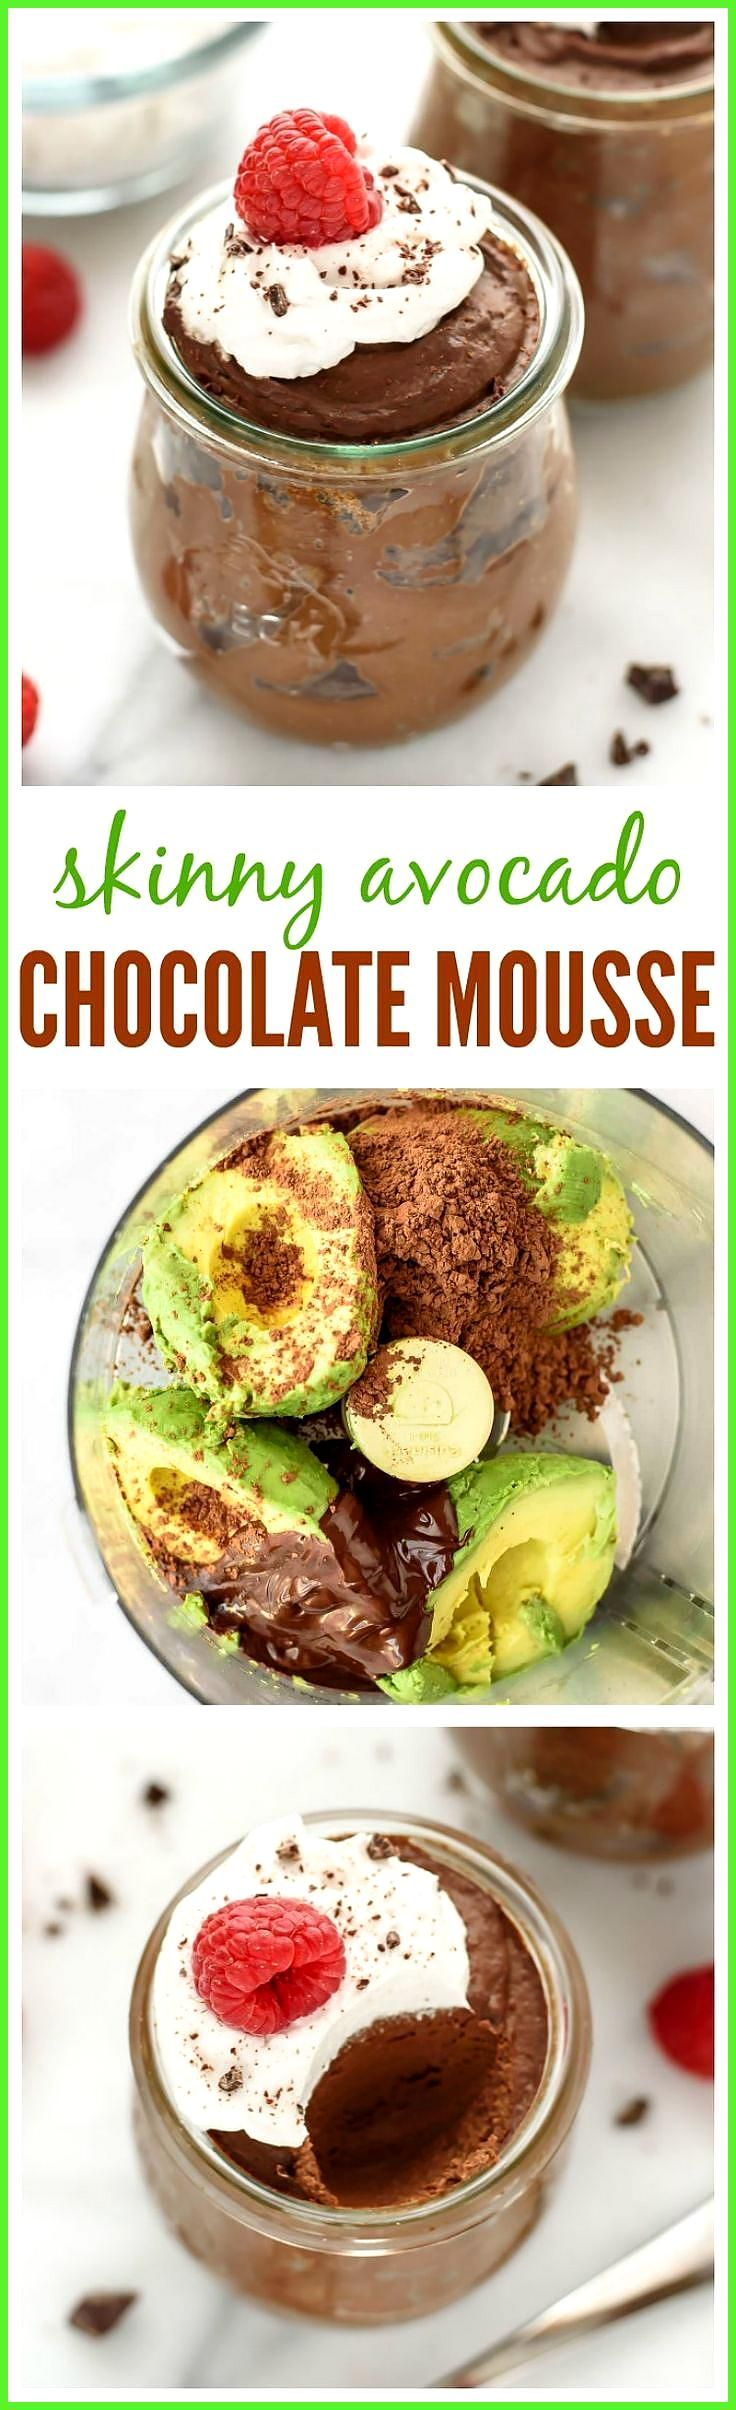 Avocado Chocolate Mousse An AMAZING gluten-free egg-free dairy-free and vegan dessert This Avocado